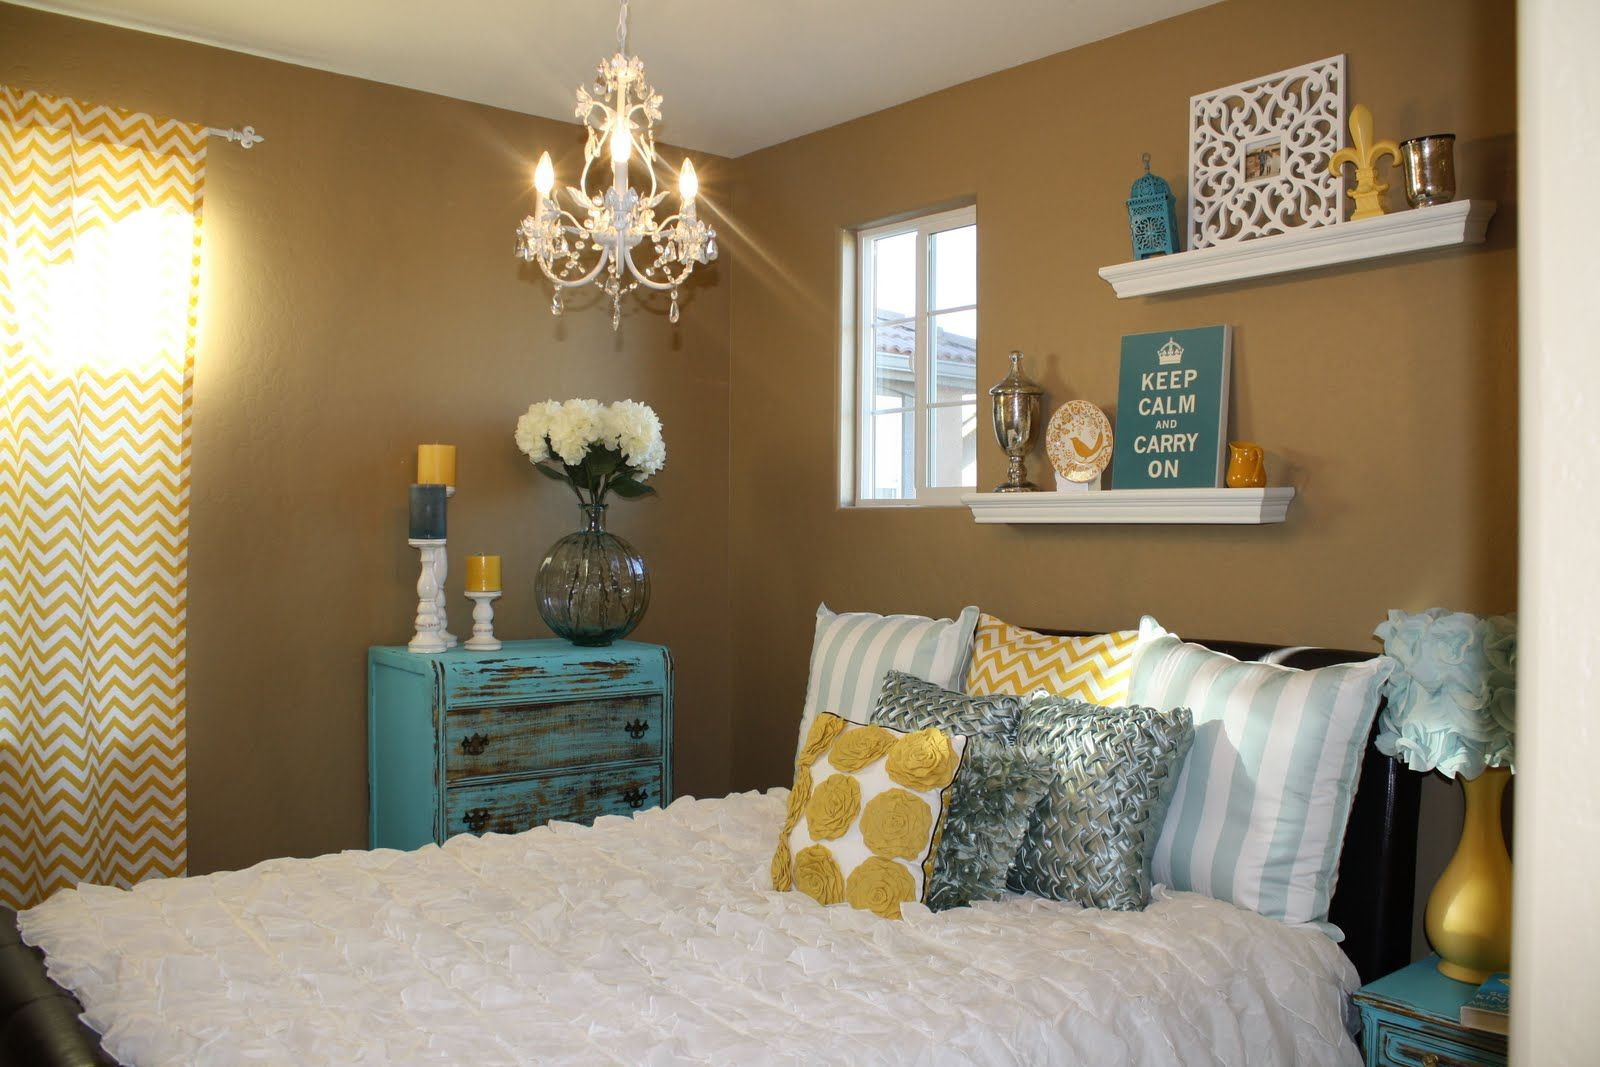 Home Decor Yellow Walls Warm Wall Color With Teal And Yellow Accents Bedroom